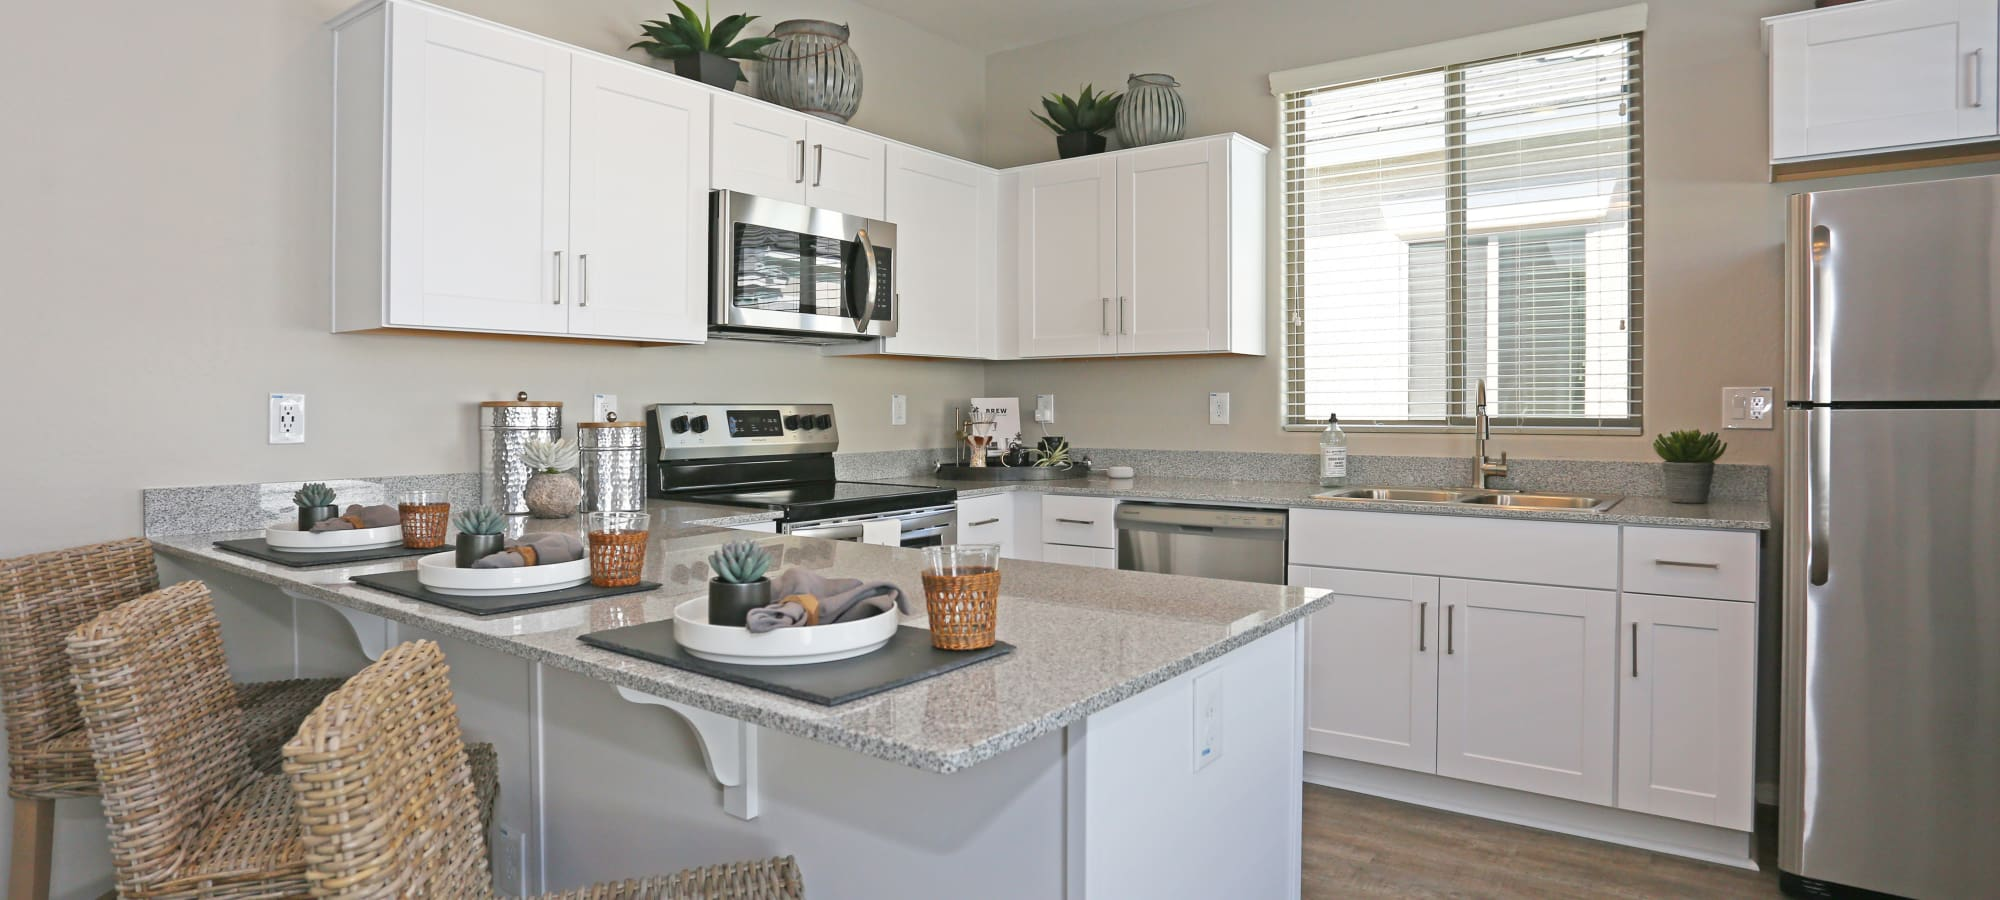 Granite countertops in model home's kitchen at Christopher Todd Communities At Stadium in Glendale, Arizona